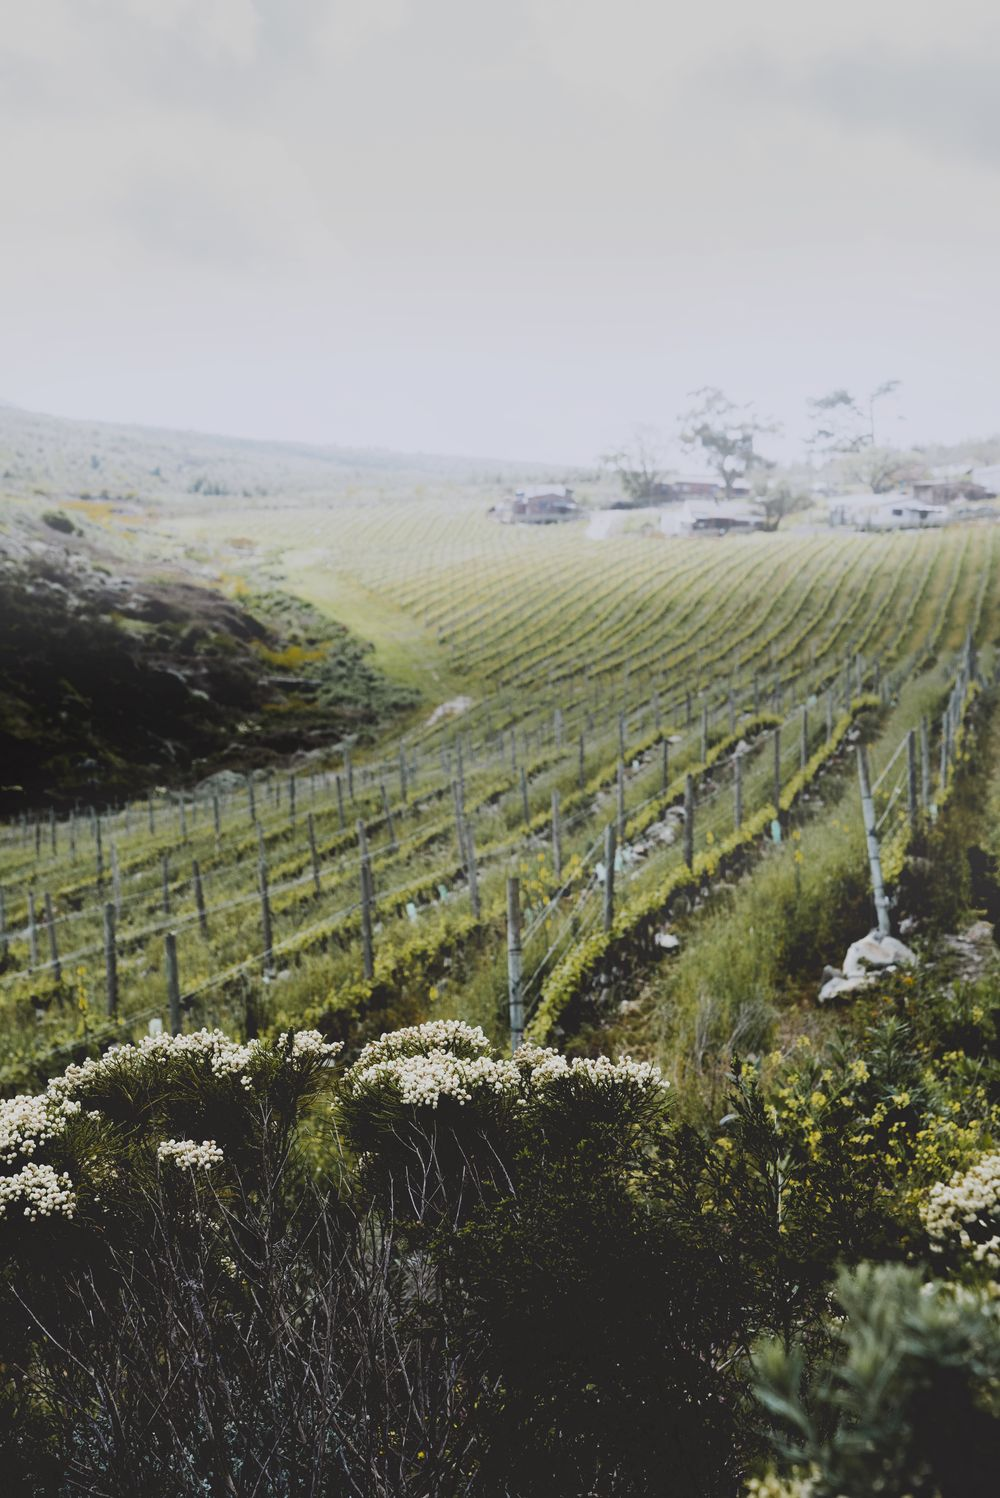 Sloping vineyards on the side of the kloof